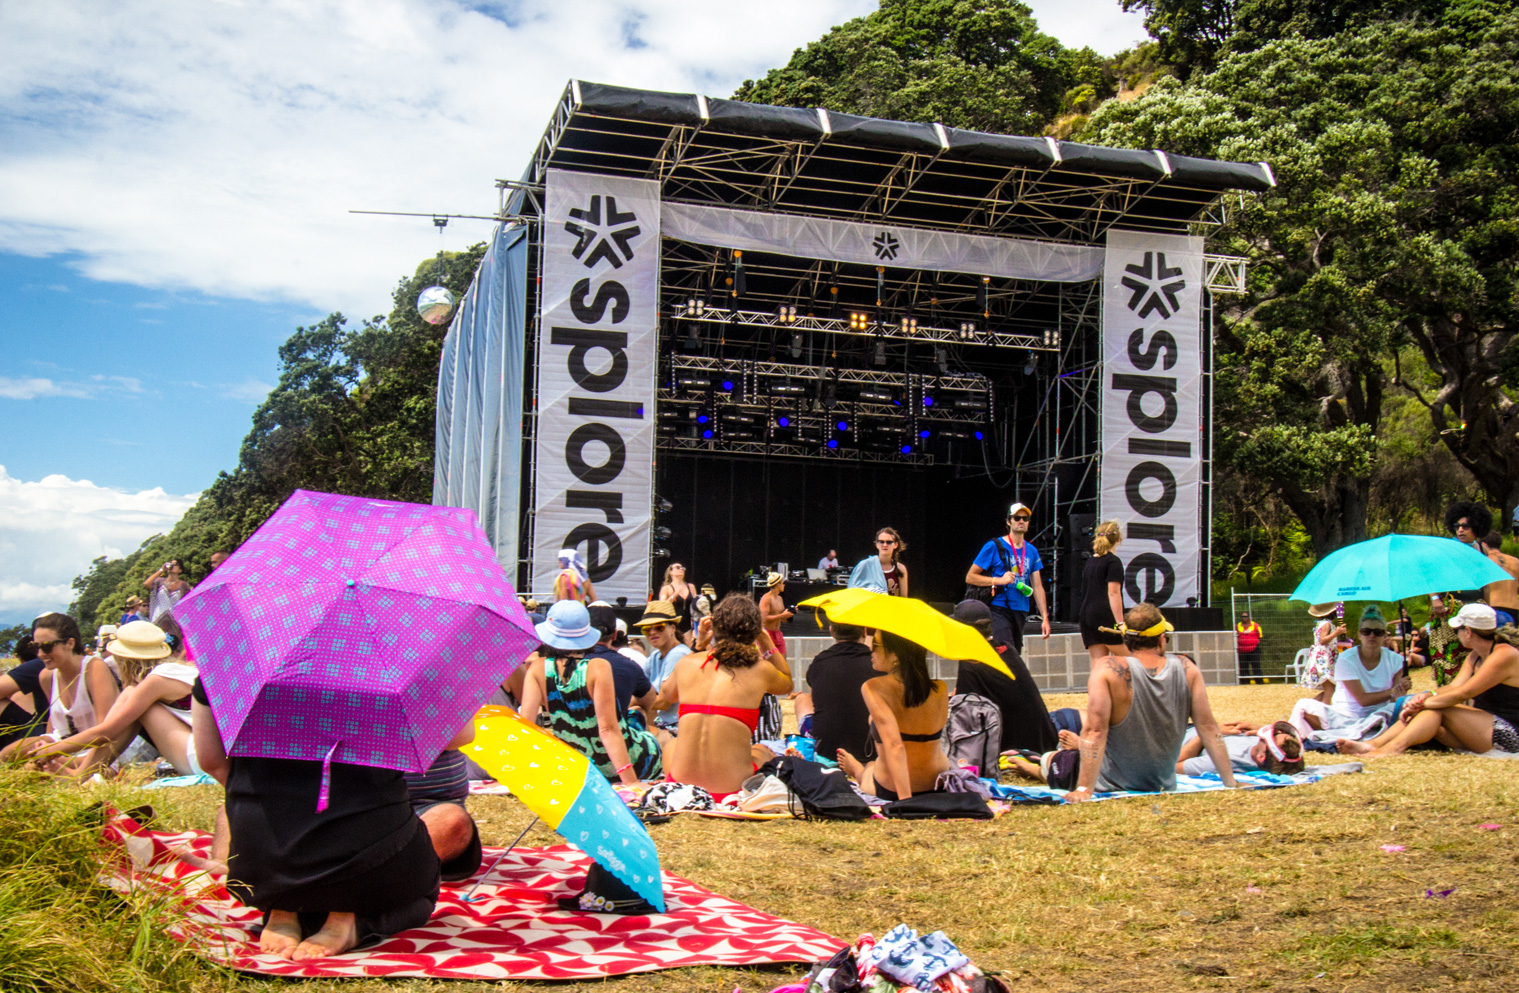 People sitting in the sun in front of the Splore stage